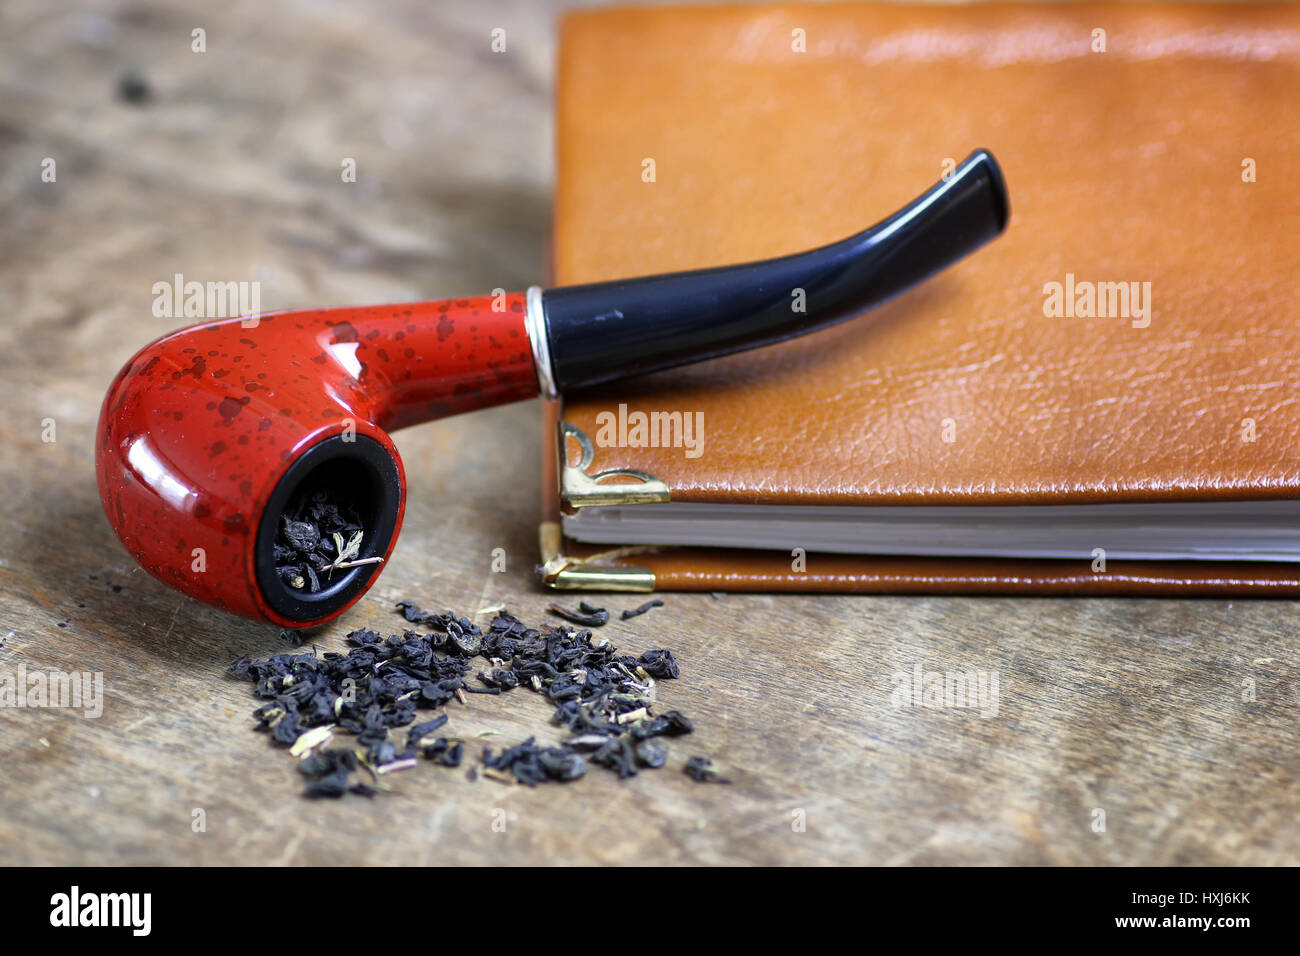 pipe tobacco table wooden - Stock Image